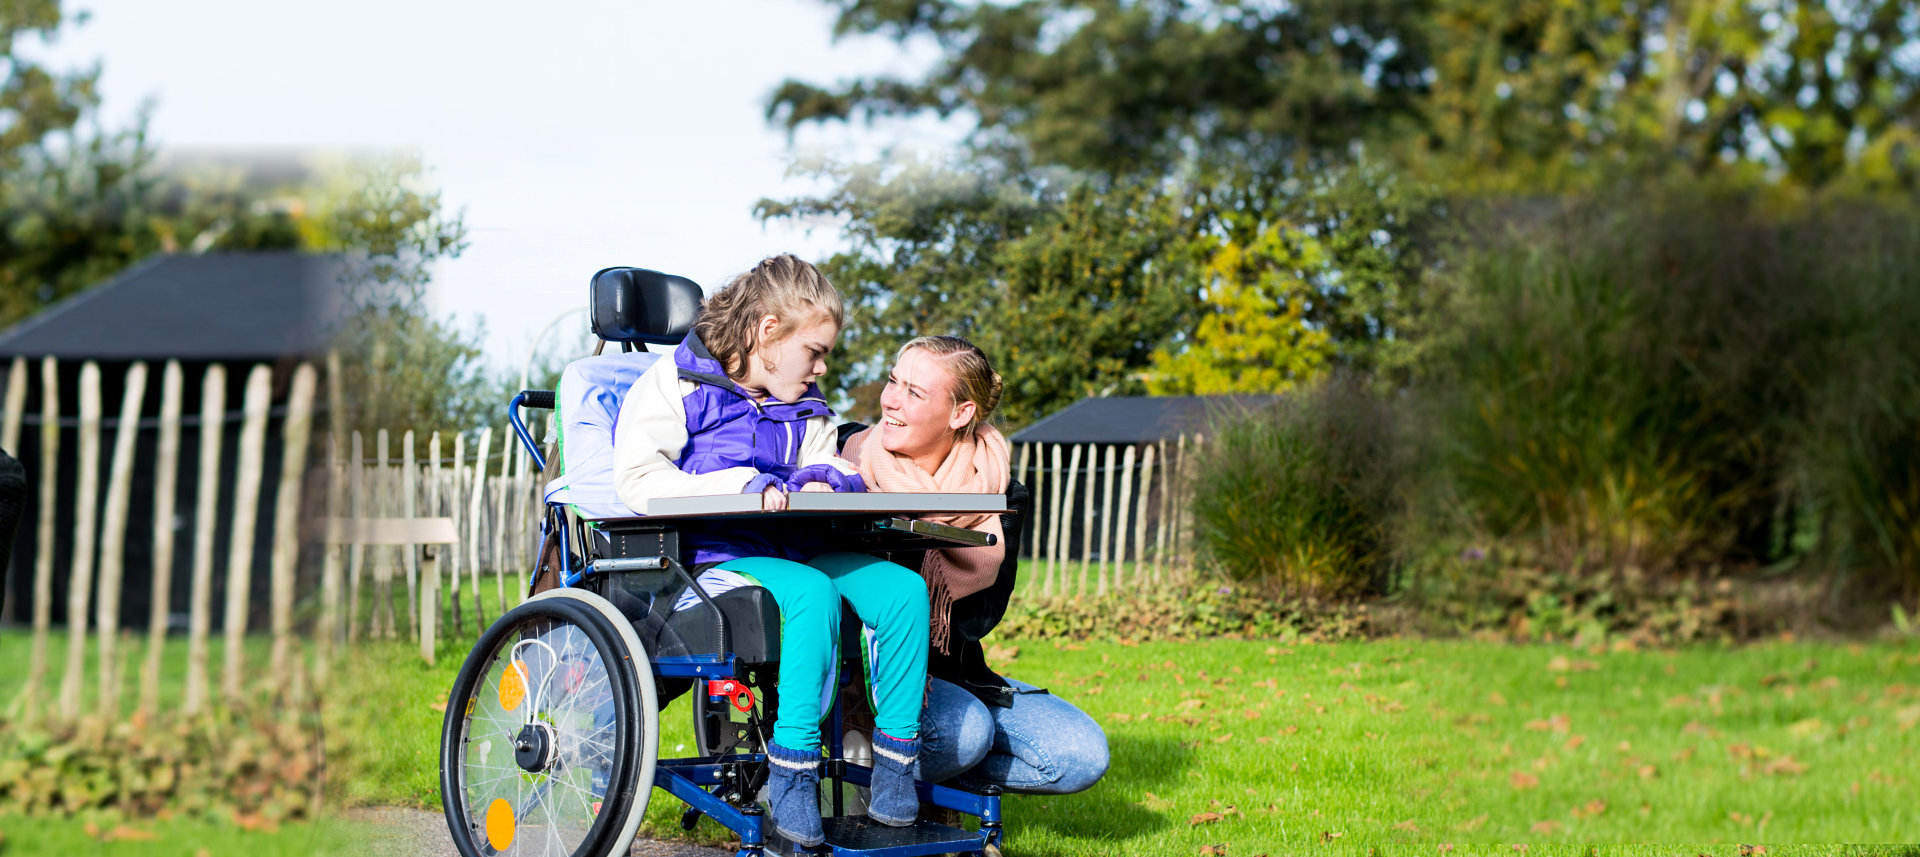 woman and girl with disability smiling